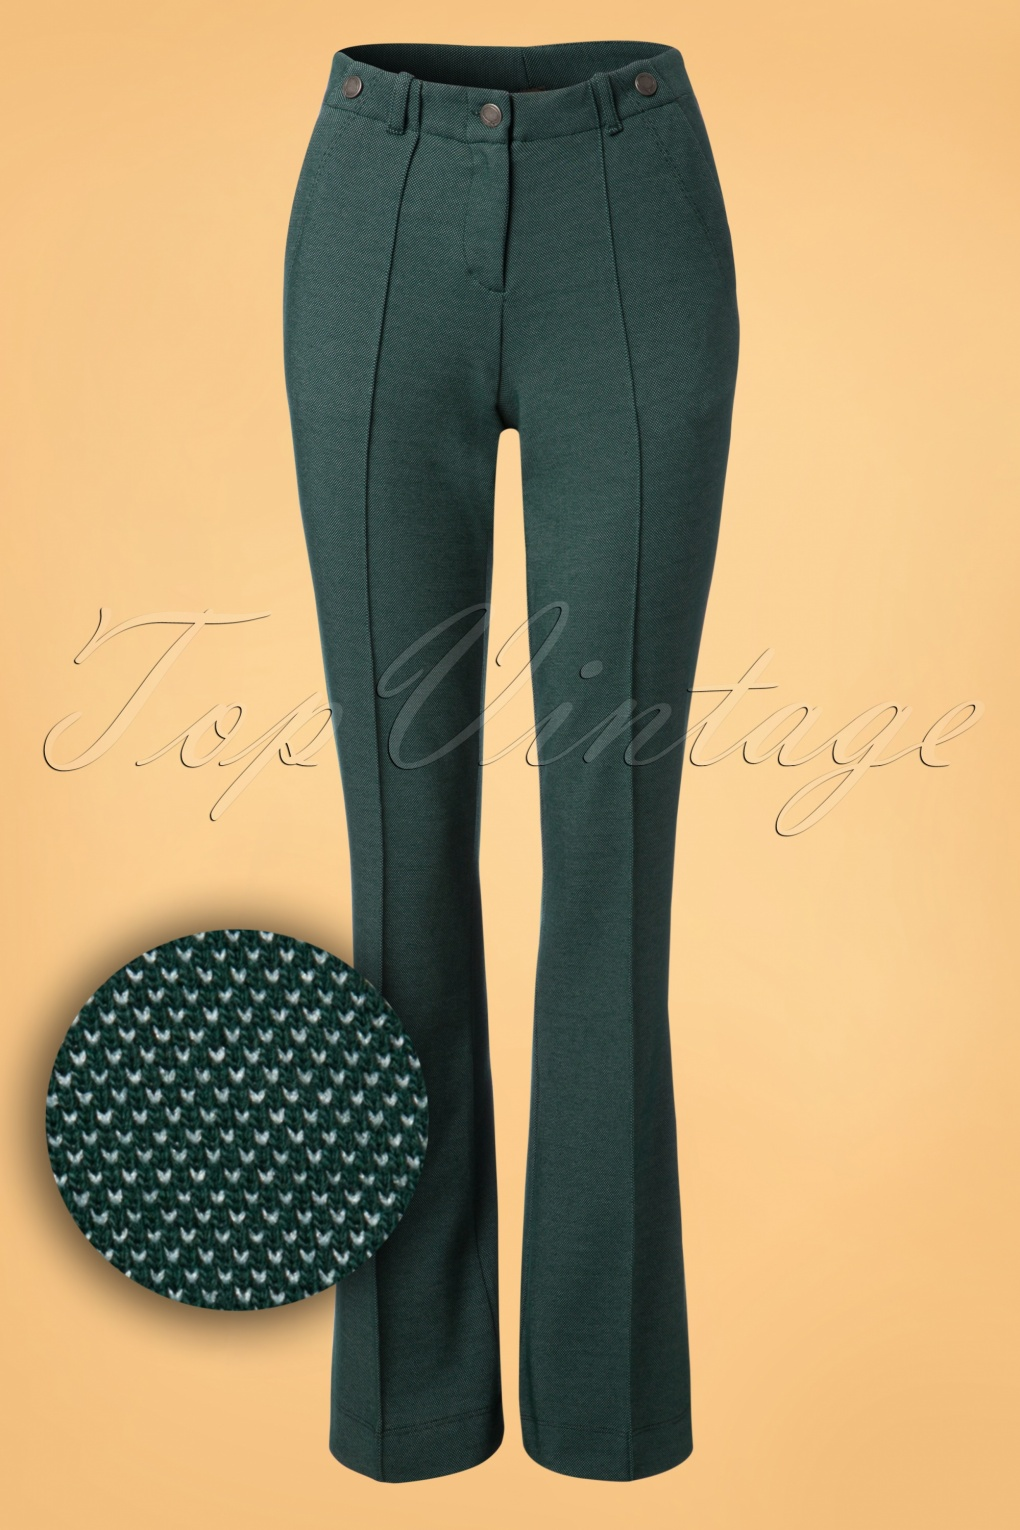 Vintage High Waisted Trousers, Sailor Pants, Jeans 60s Bongo Trousers in Green £80.87 AT vintagedancer.com